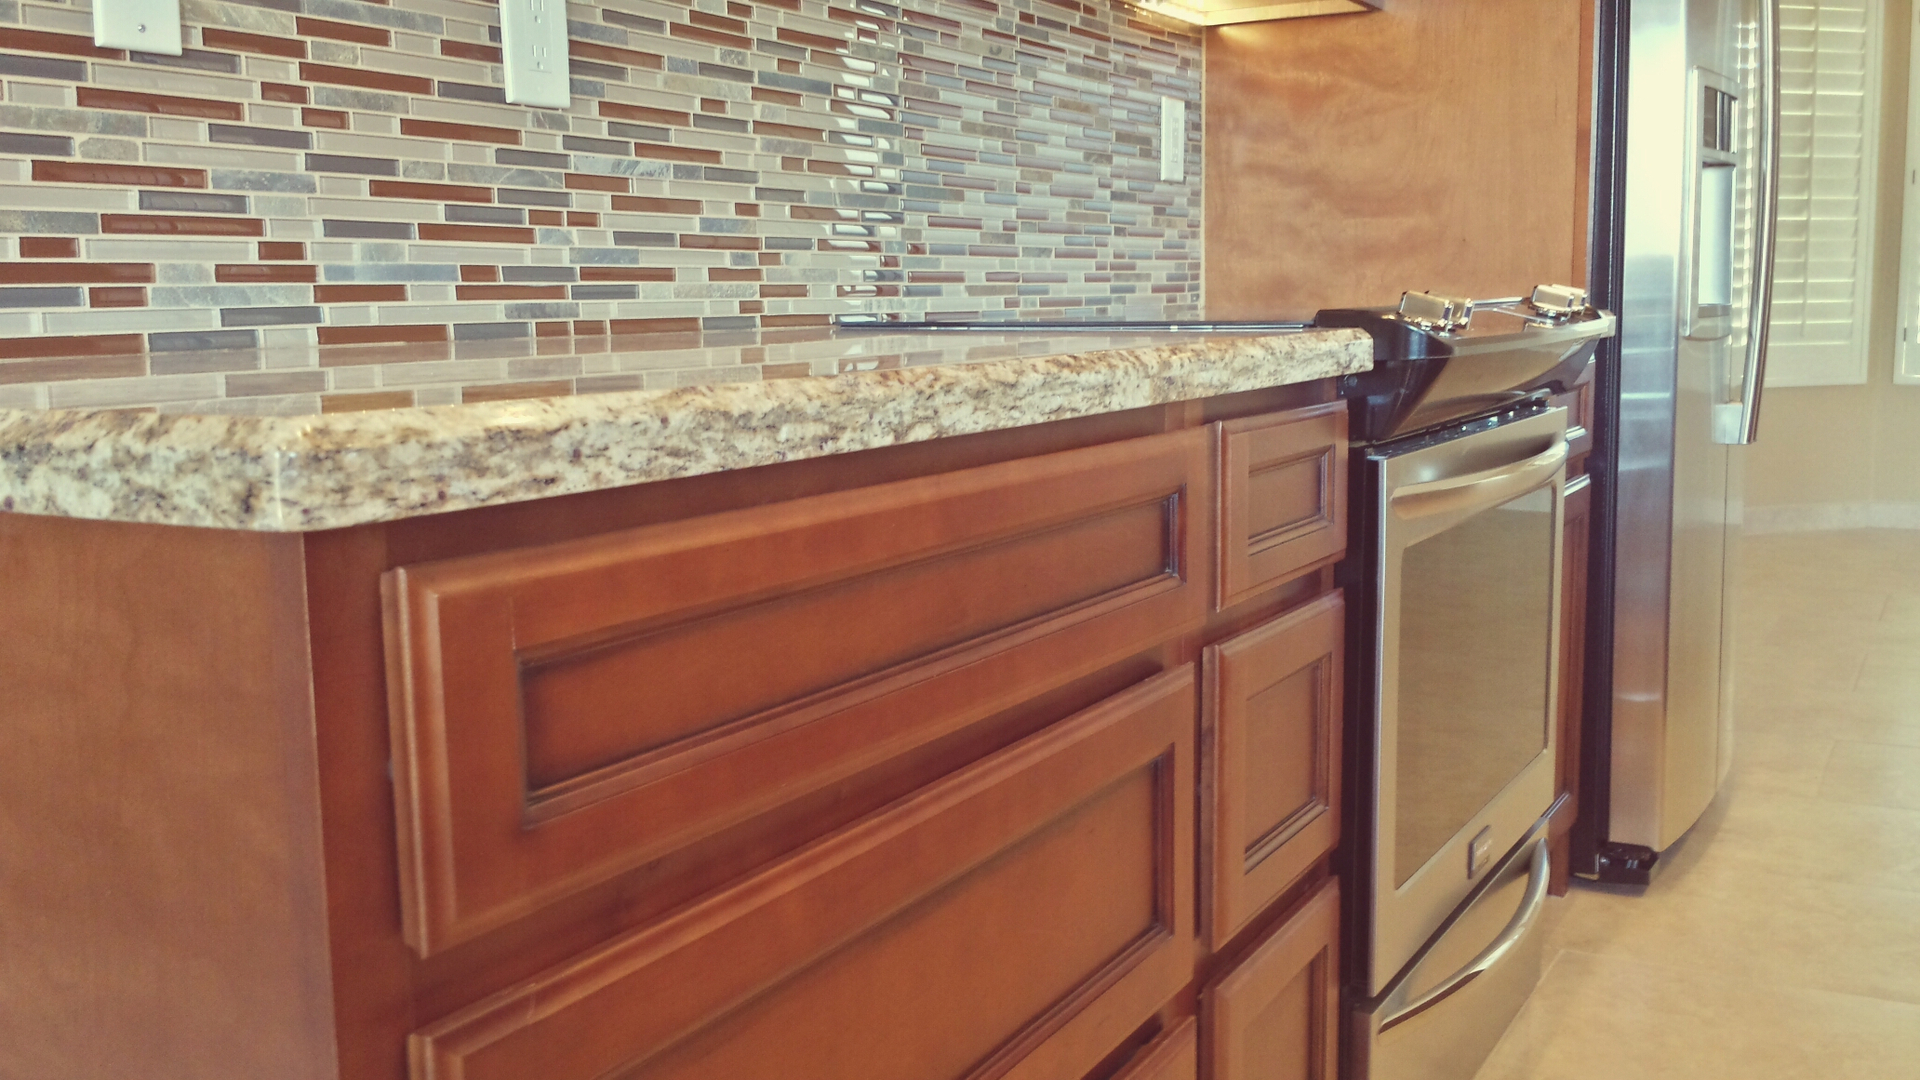 Arizona Kitchen Cabinets dutch design - arizona kitchen cabinets and bathroom vanities in